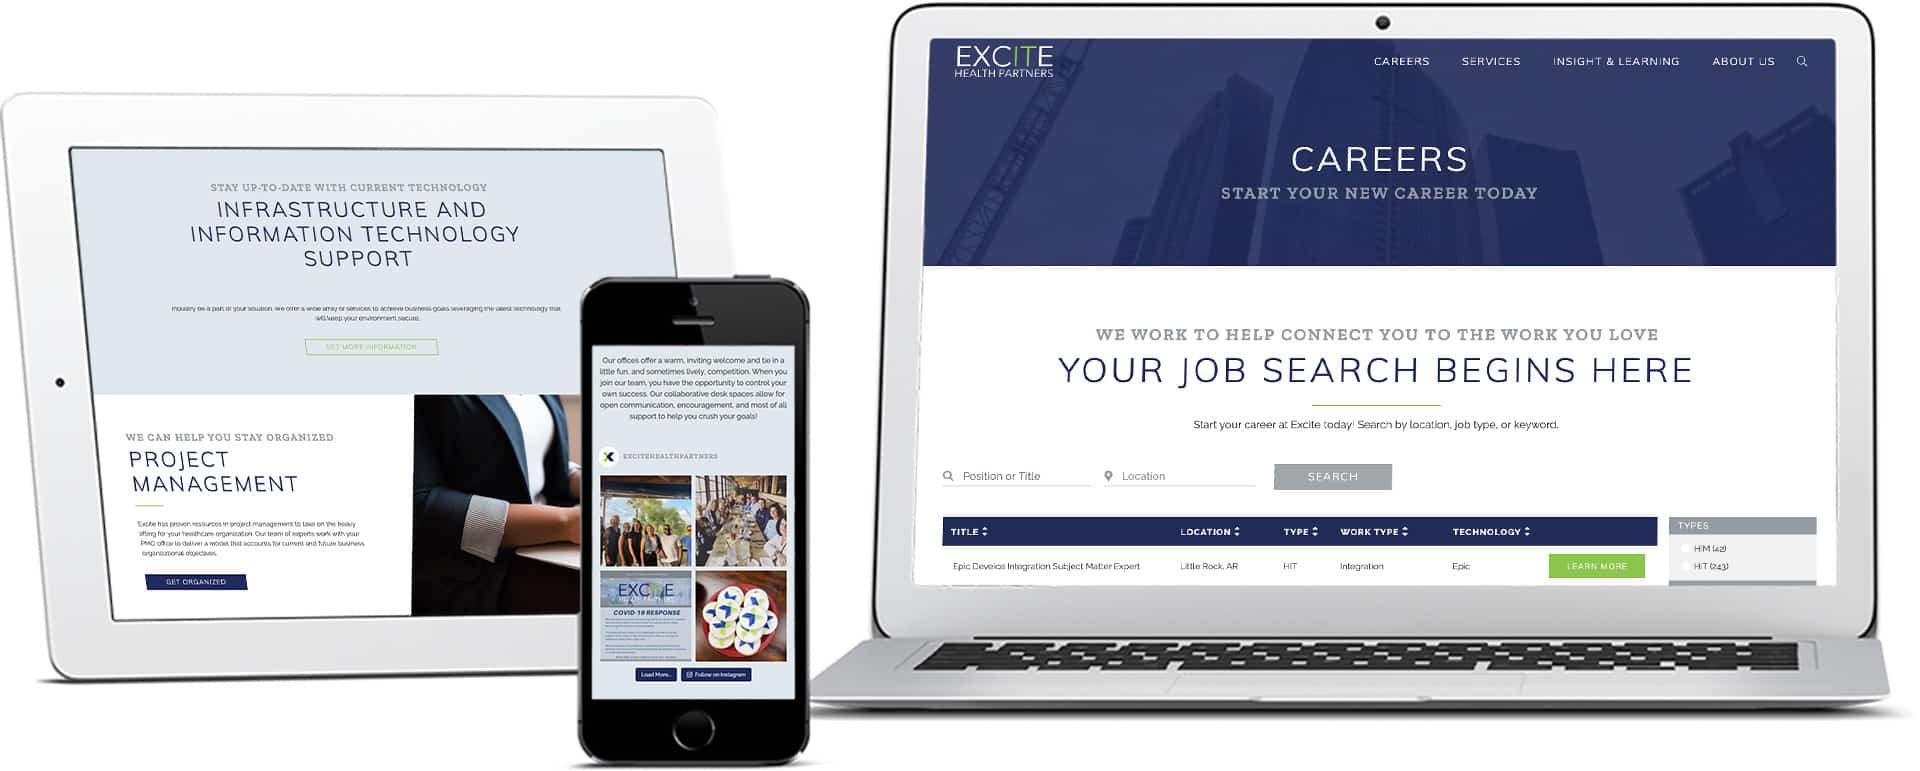 Excite Health Partners website mocked up on devices